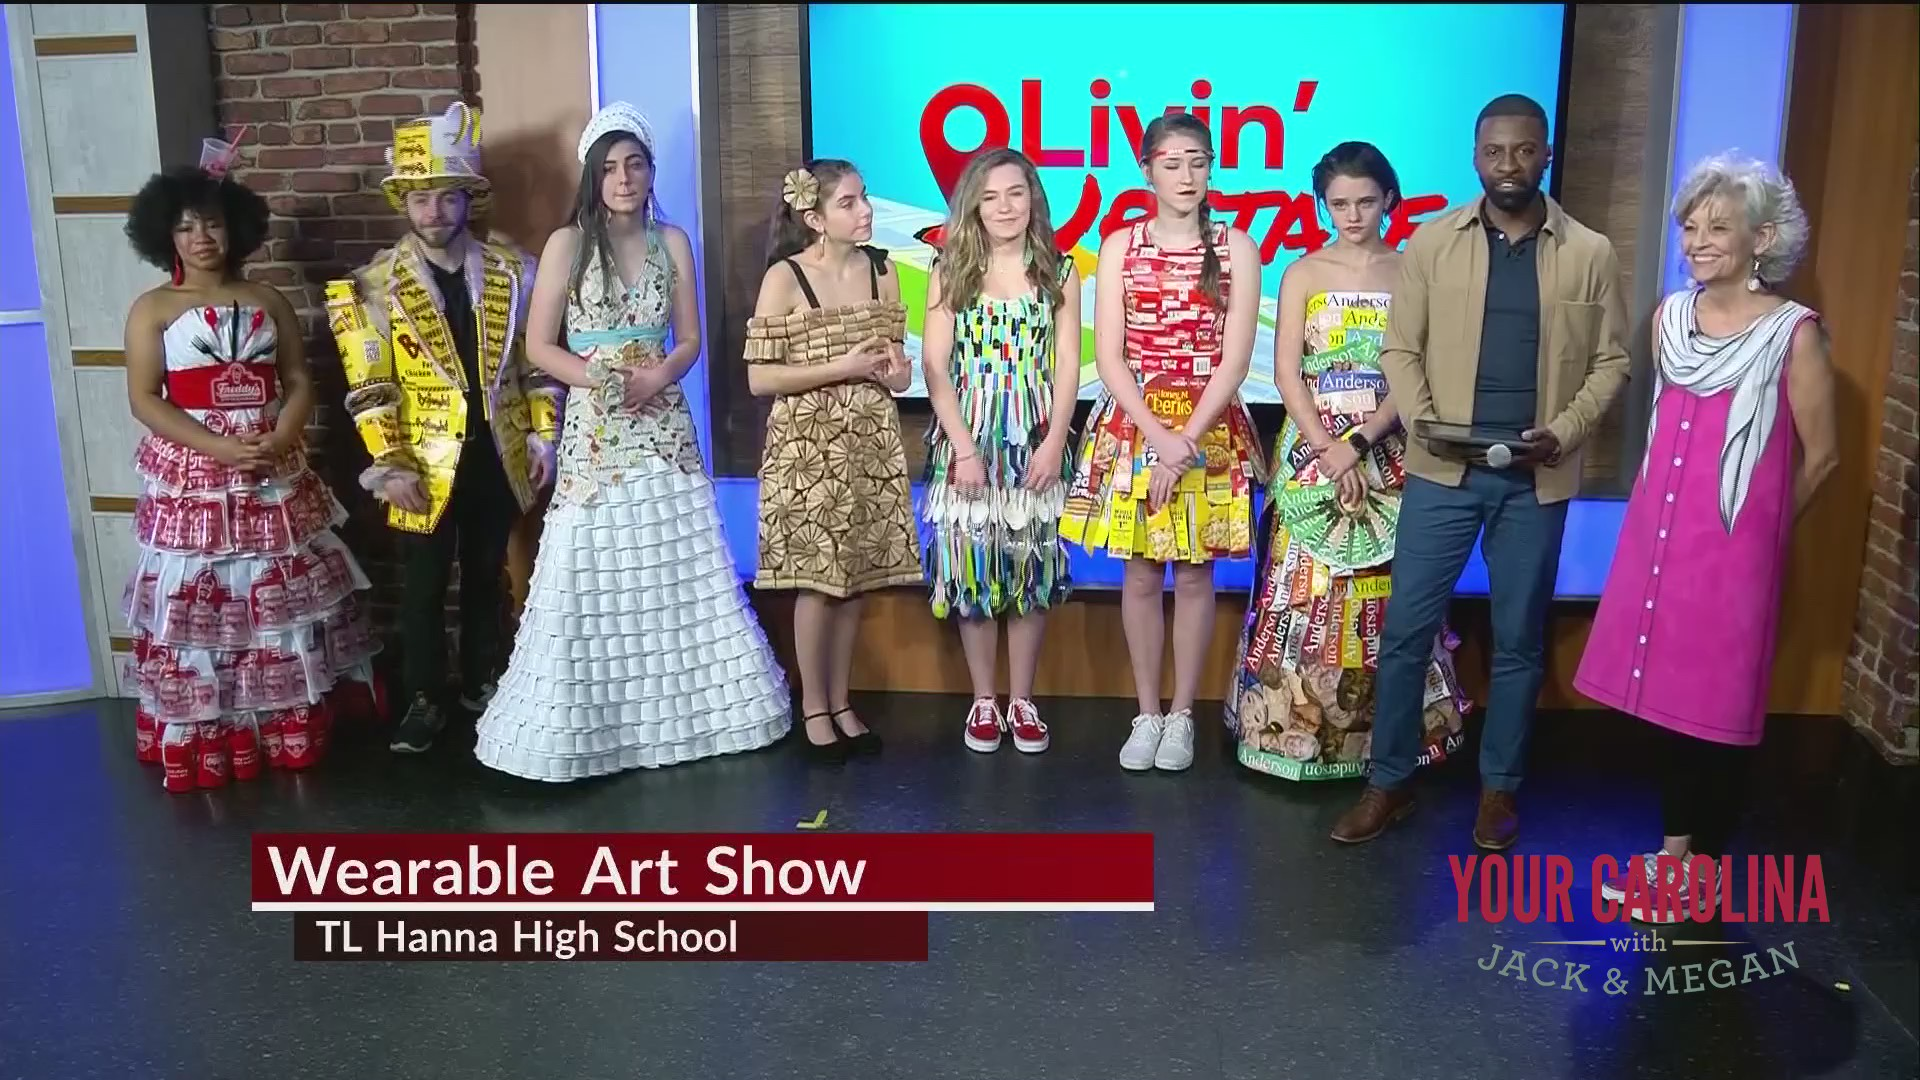 TL Hanna's Wearable Art Exhibition benefits student artists of all ages